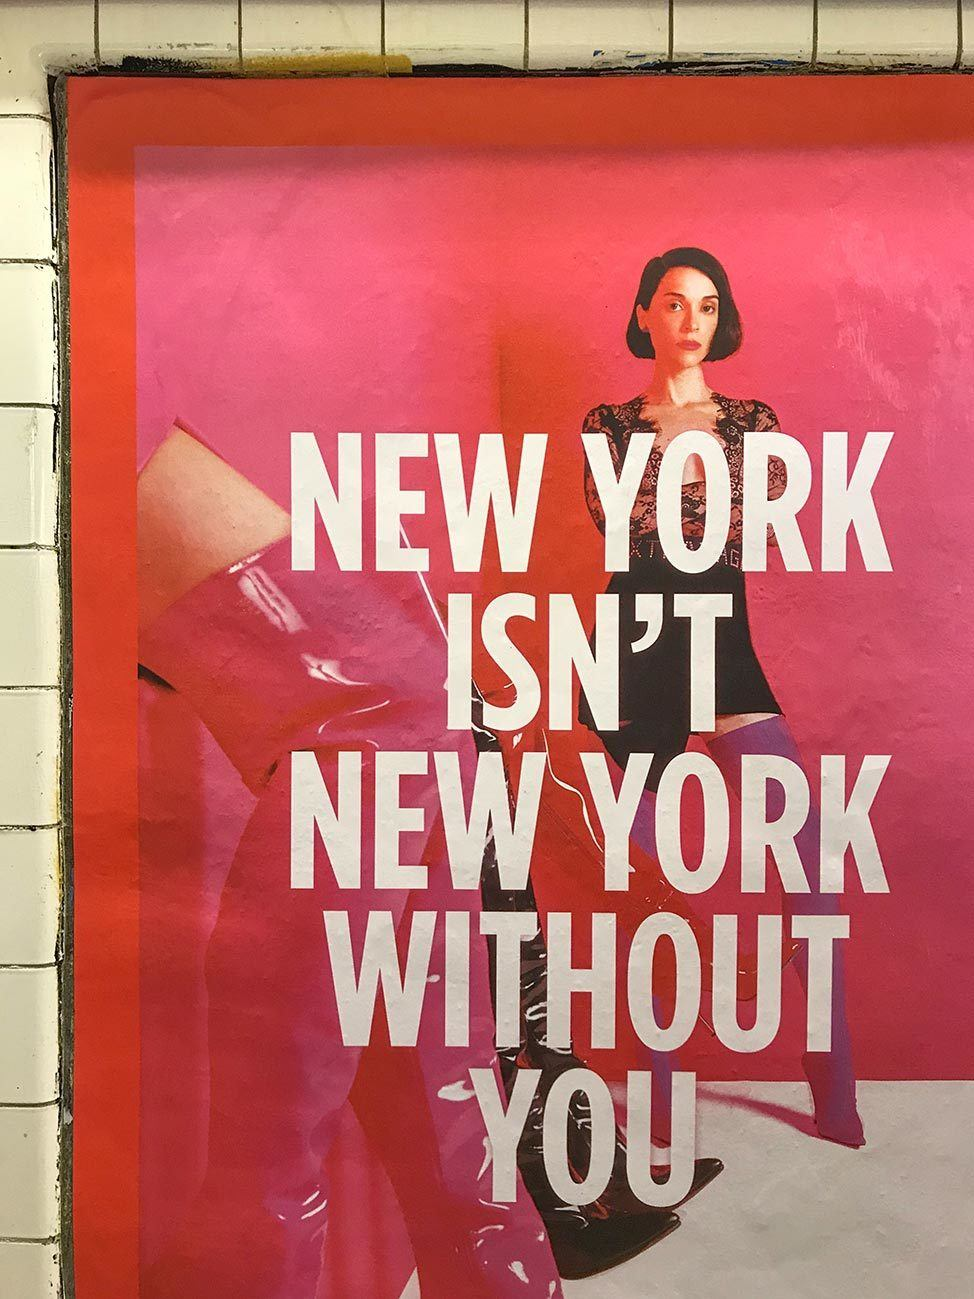 New York Isn't New York Without You